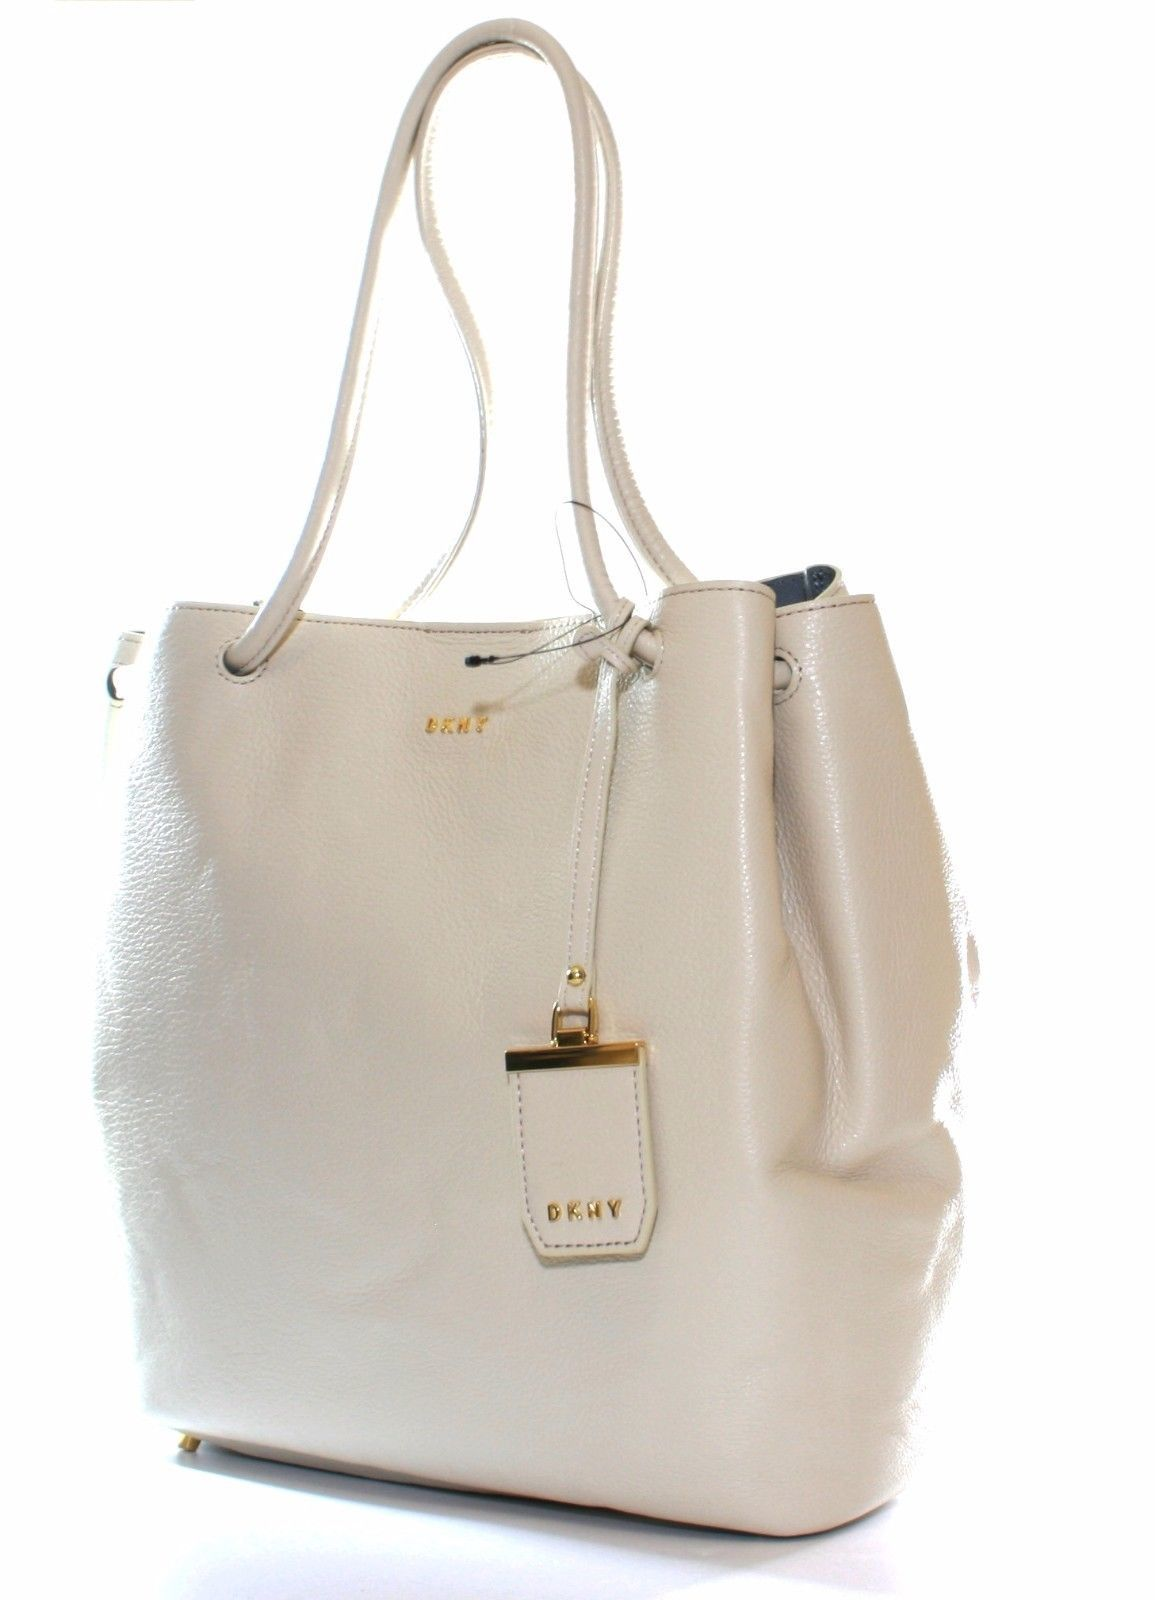 Primary image for DKNY Donna Karan Sand Dollar Cream Leather Shoulder Bag Medium Handbag